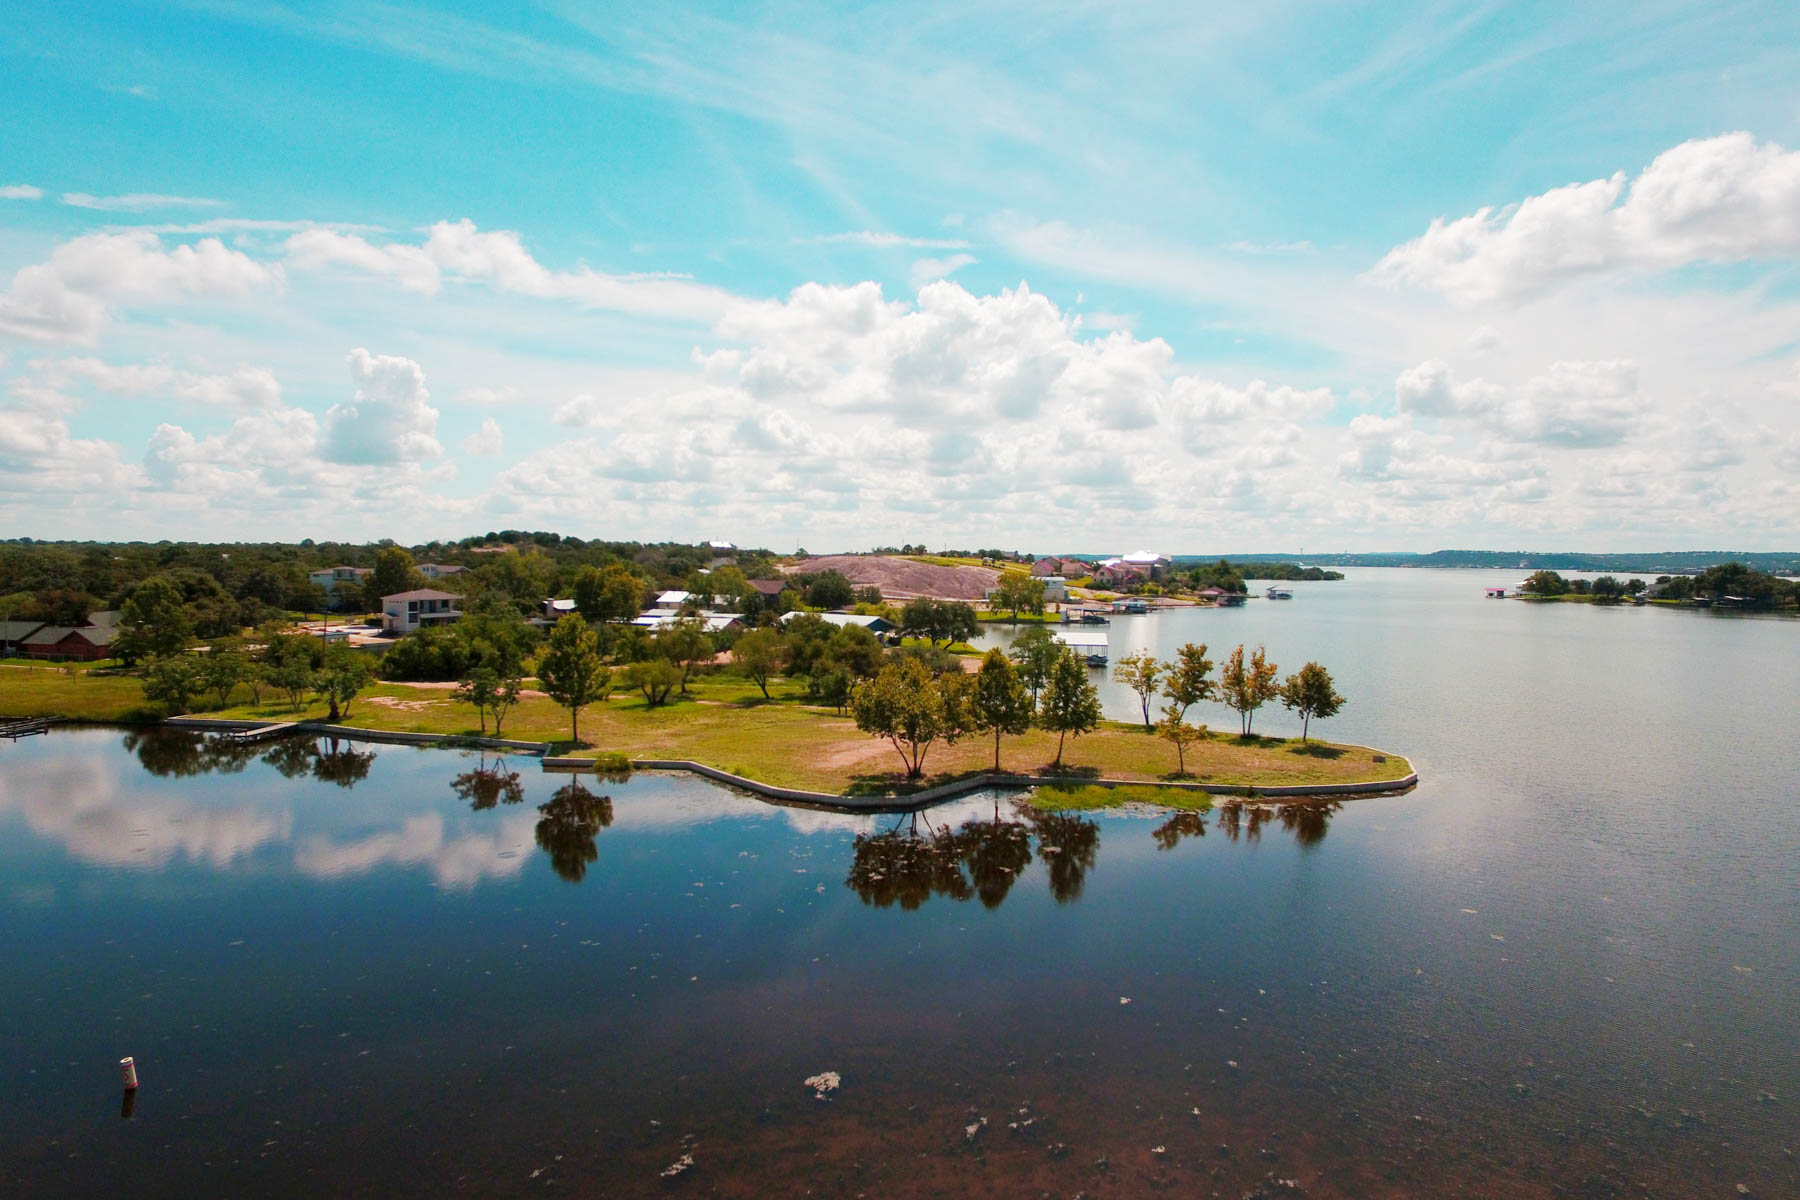 Land for Sale at A Rare Opportunity on Lake LB 701 Woodland Hills Dr Granite Shoals, Texas 78654 United States